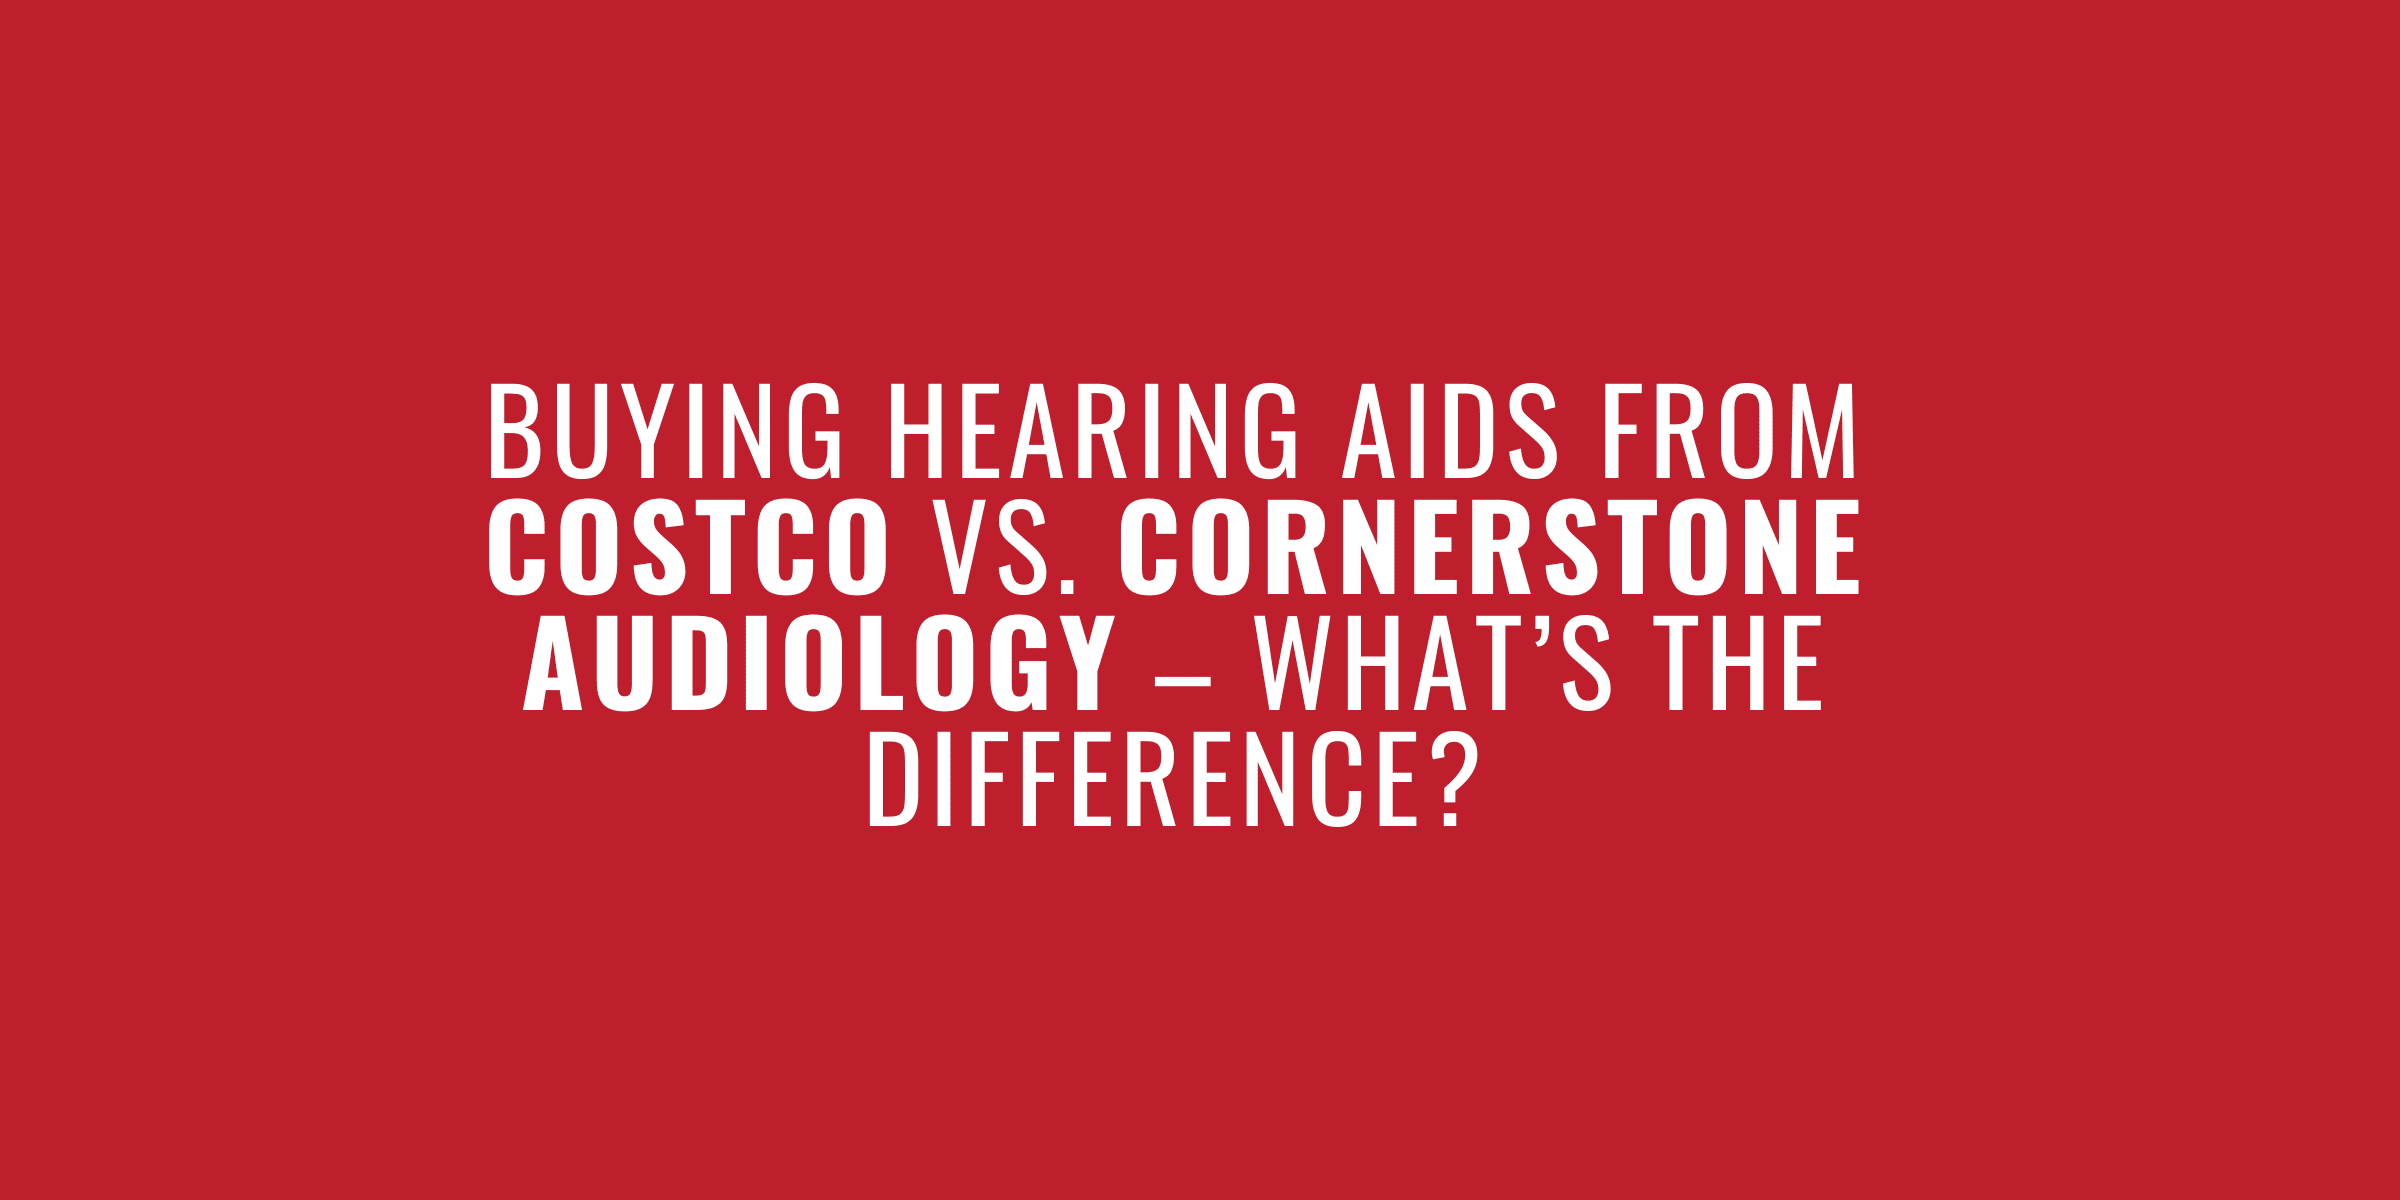 Buying Hearing Aids from Costco Vs. Cornerstone Audiology – What's the Difference?